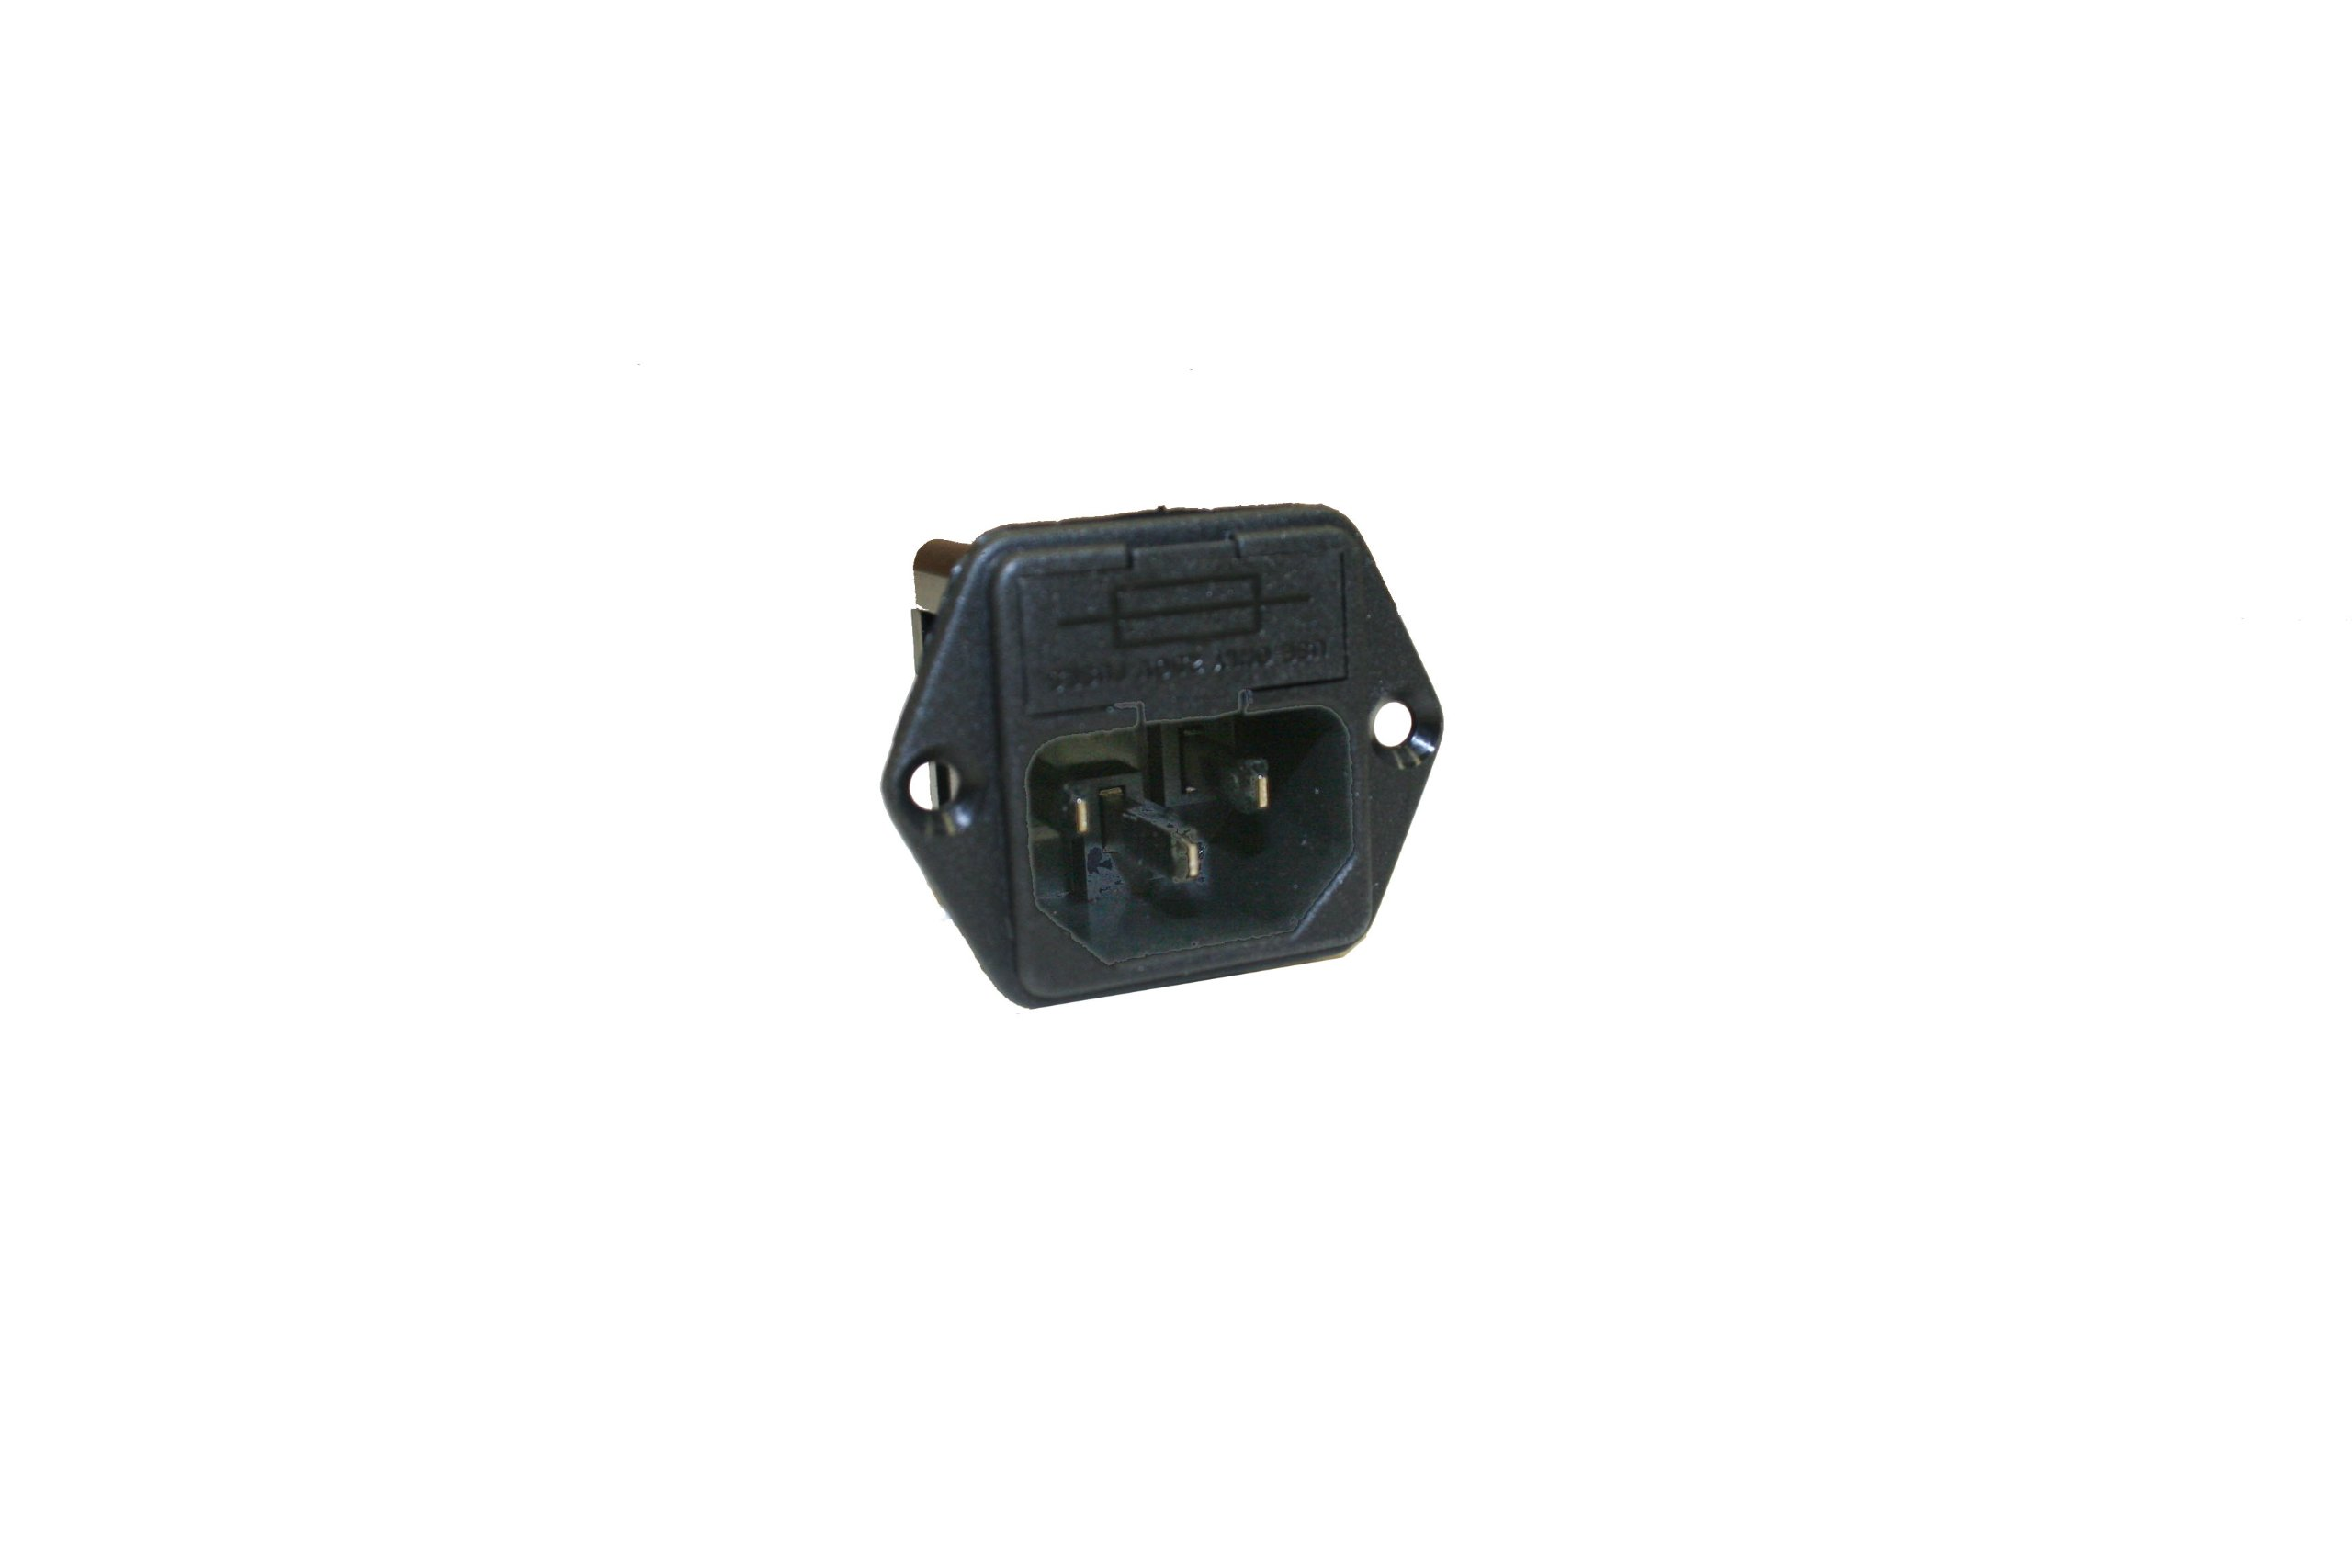 Interpower 83110131 Two Function Single Fused Power Entry Module, C14 Inlet, Single Fused, 10A Current Rating, 250VAC Voltage Rating